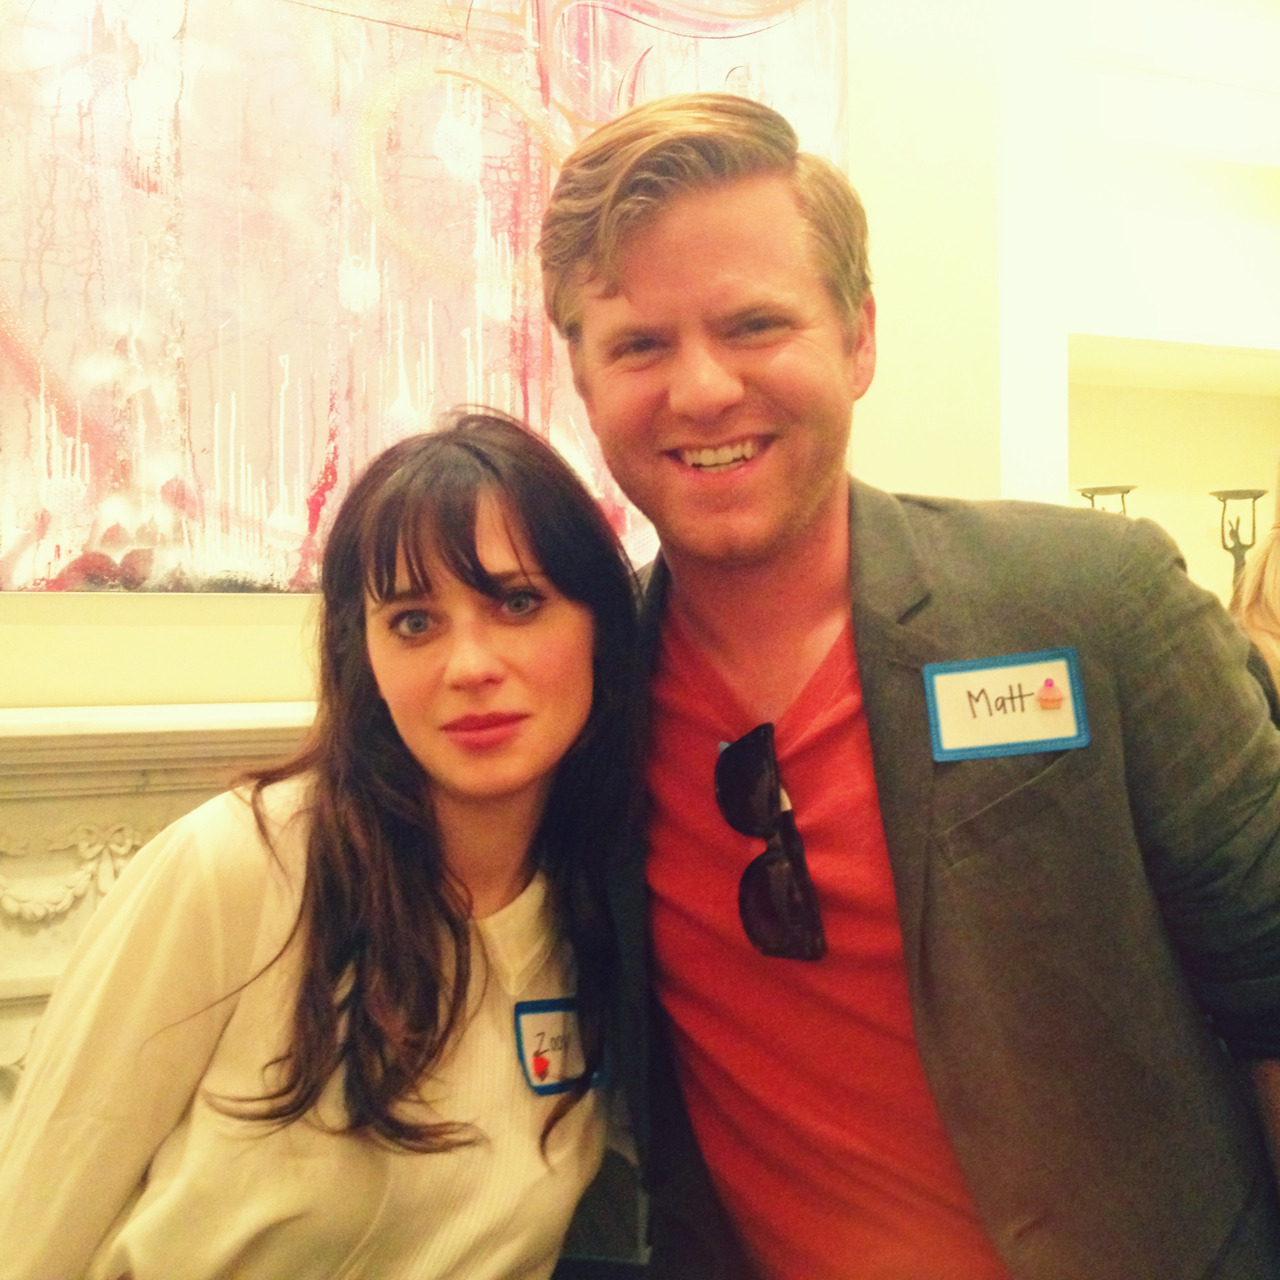 Got to meet at chat with Zooey Deschanel last night. Needless to say, it was pretty awesome.